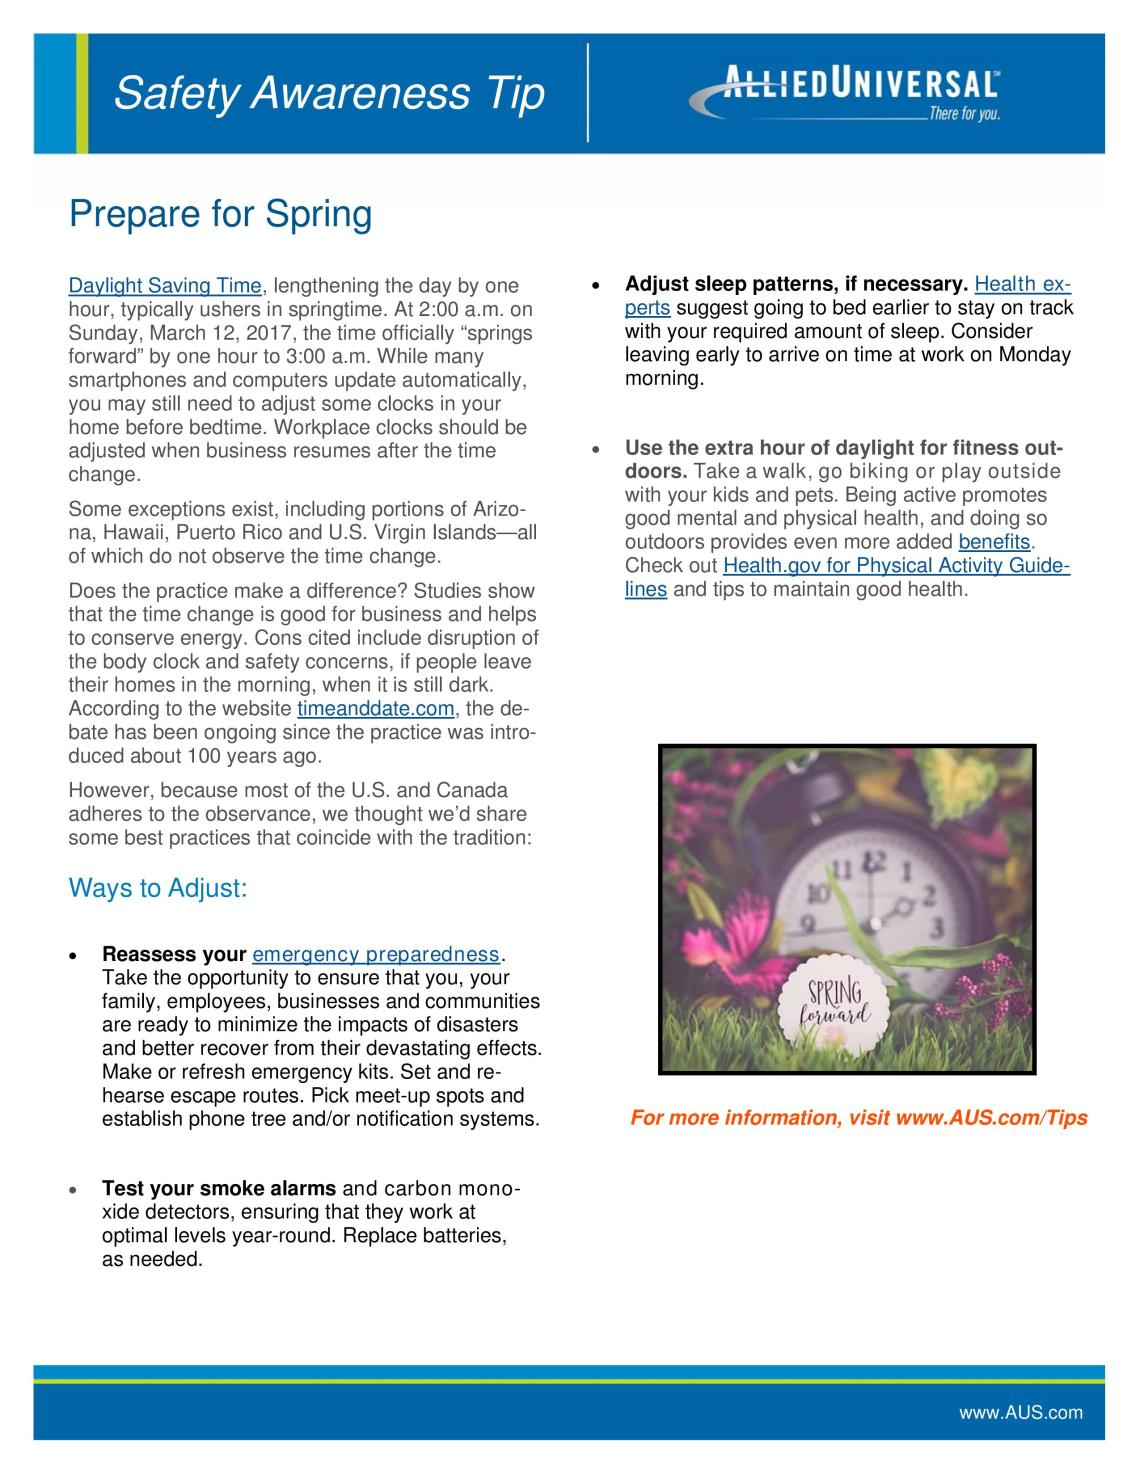 Prepare for spring-page-001.jpg